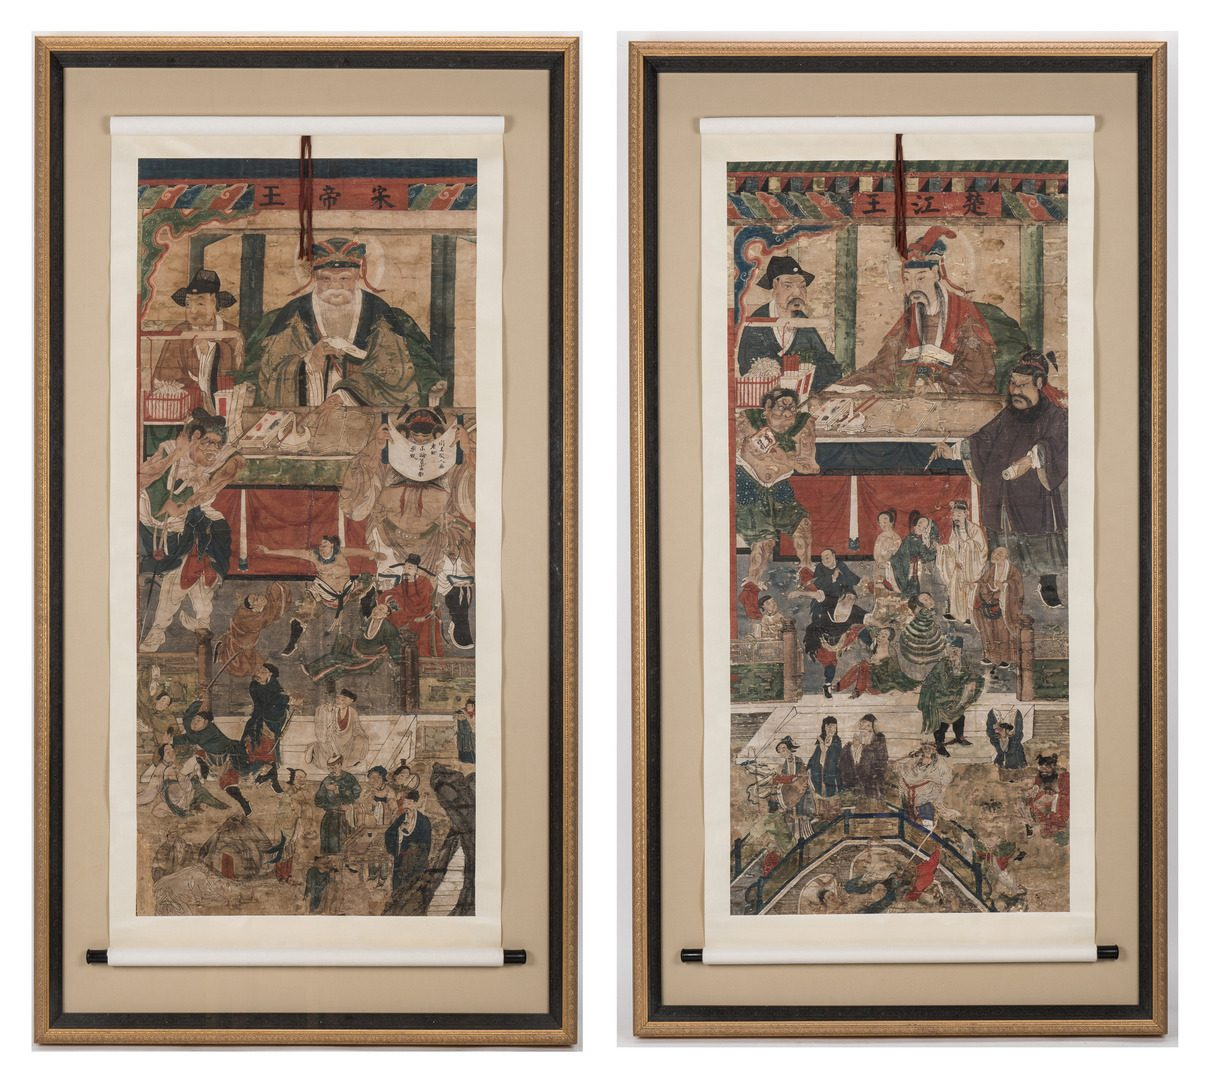 Lot 28: Two Framed Taoist Scrolls, Diyu (2nd pair)